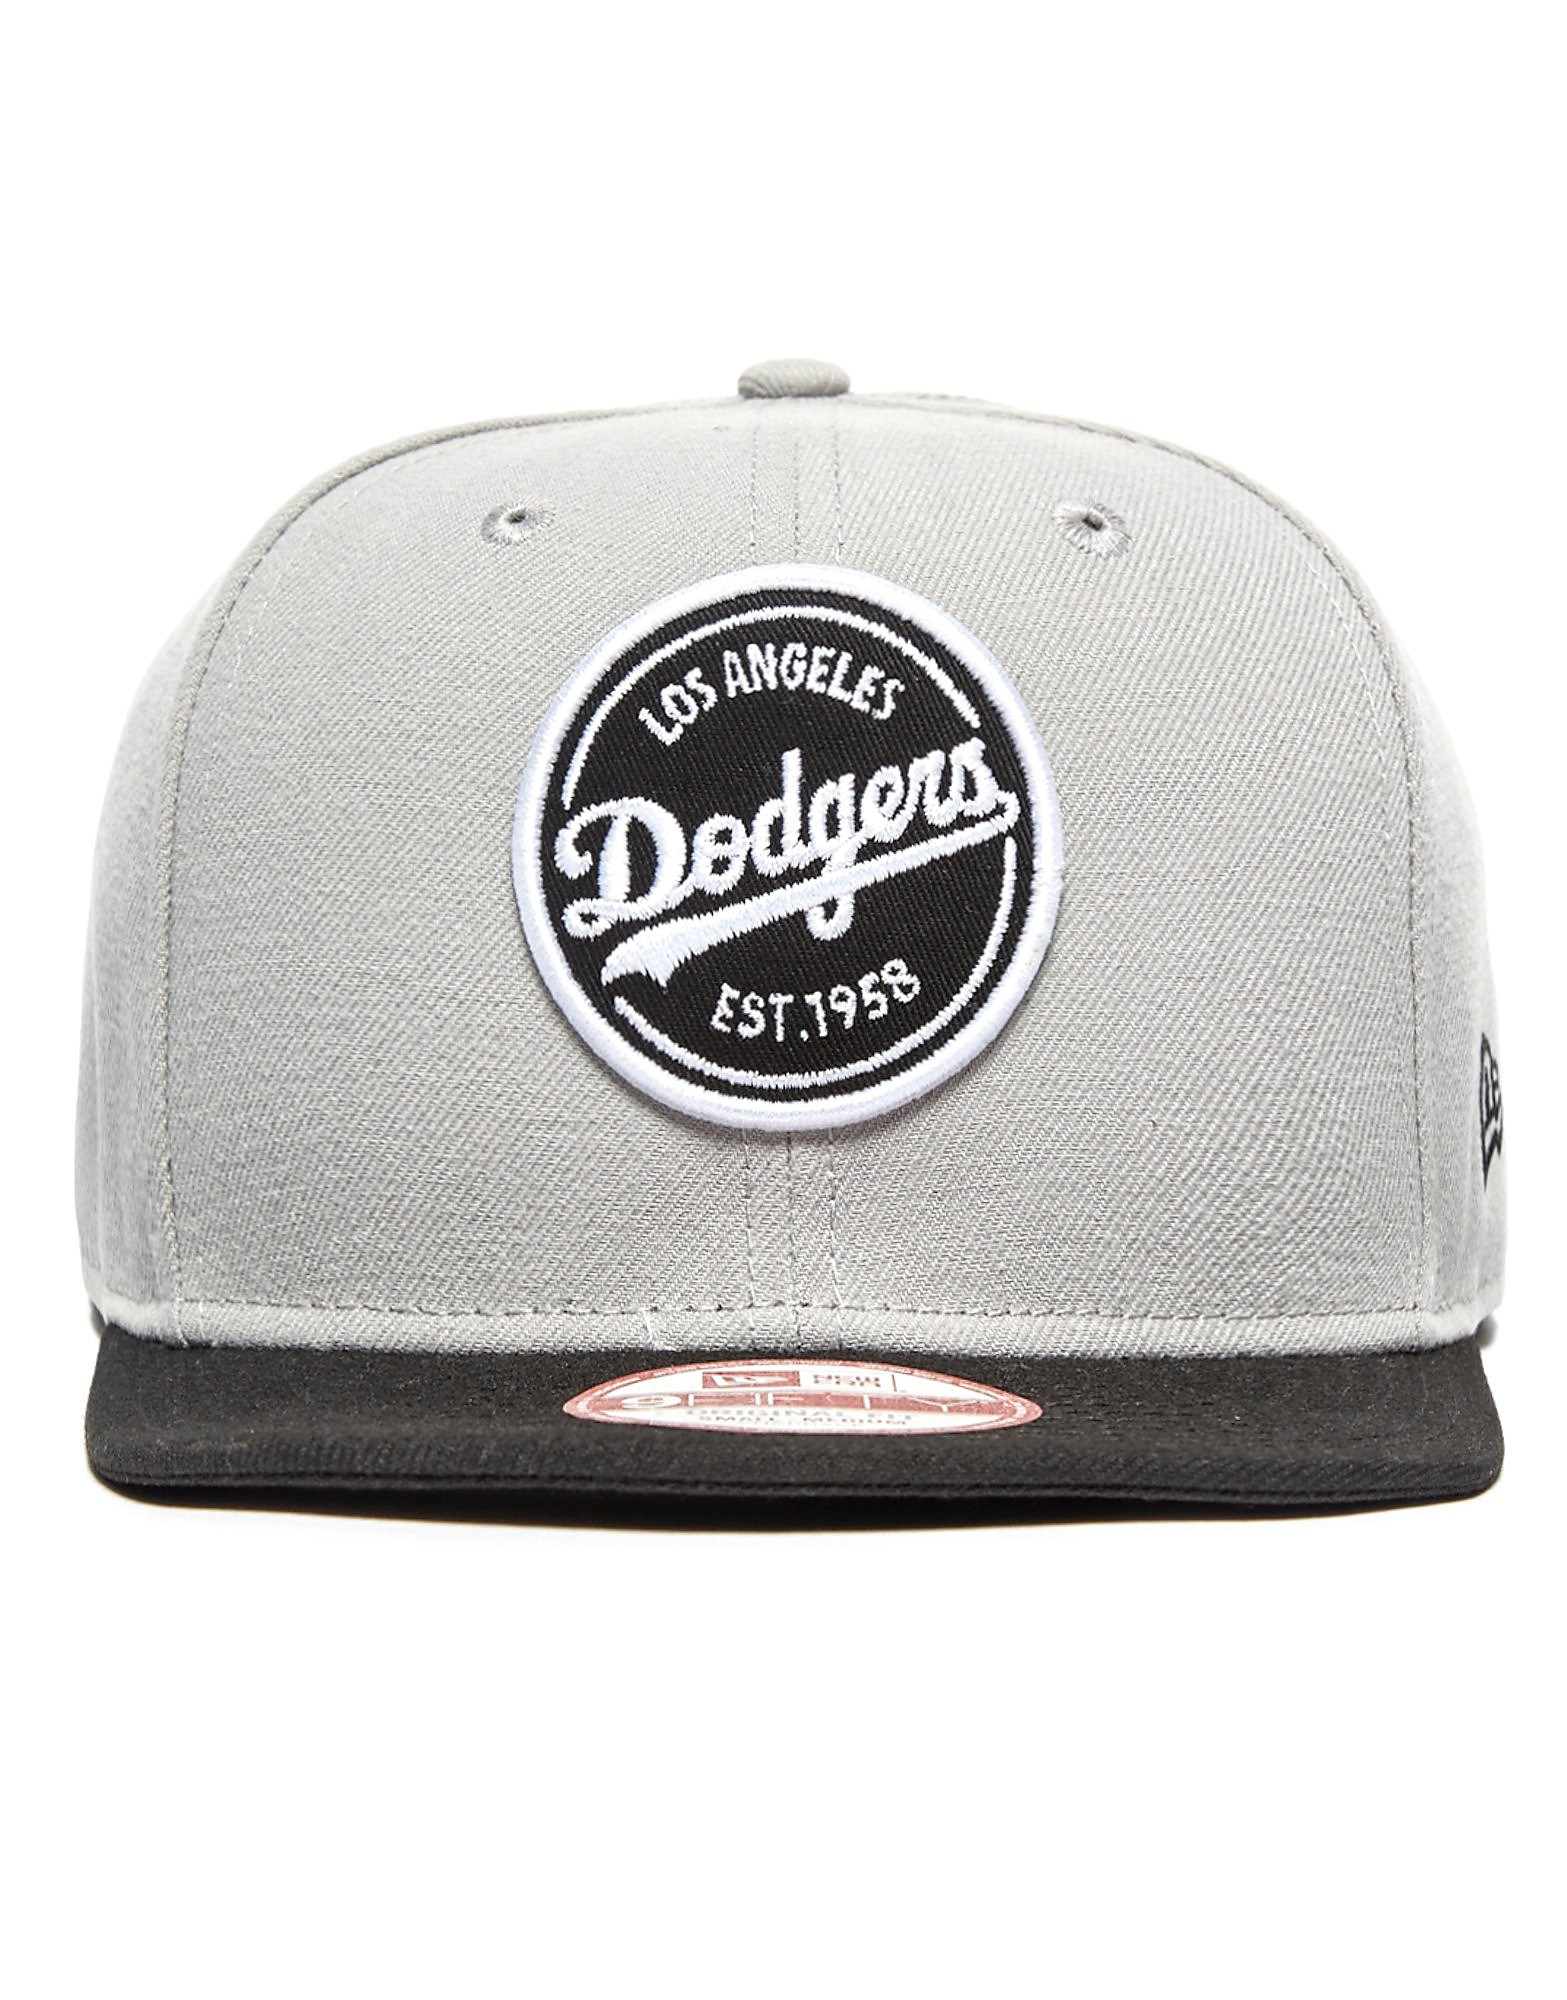 New Era MLB Los Angeles Dodgers 9FIFTY Emblem Snapback Cap